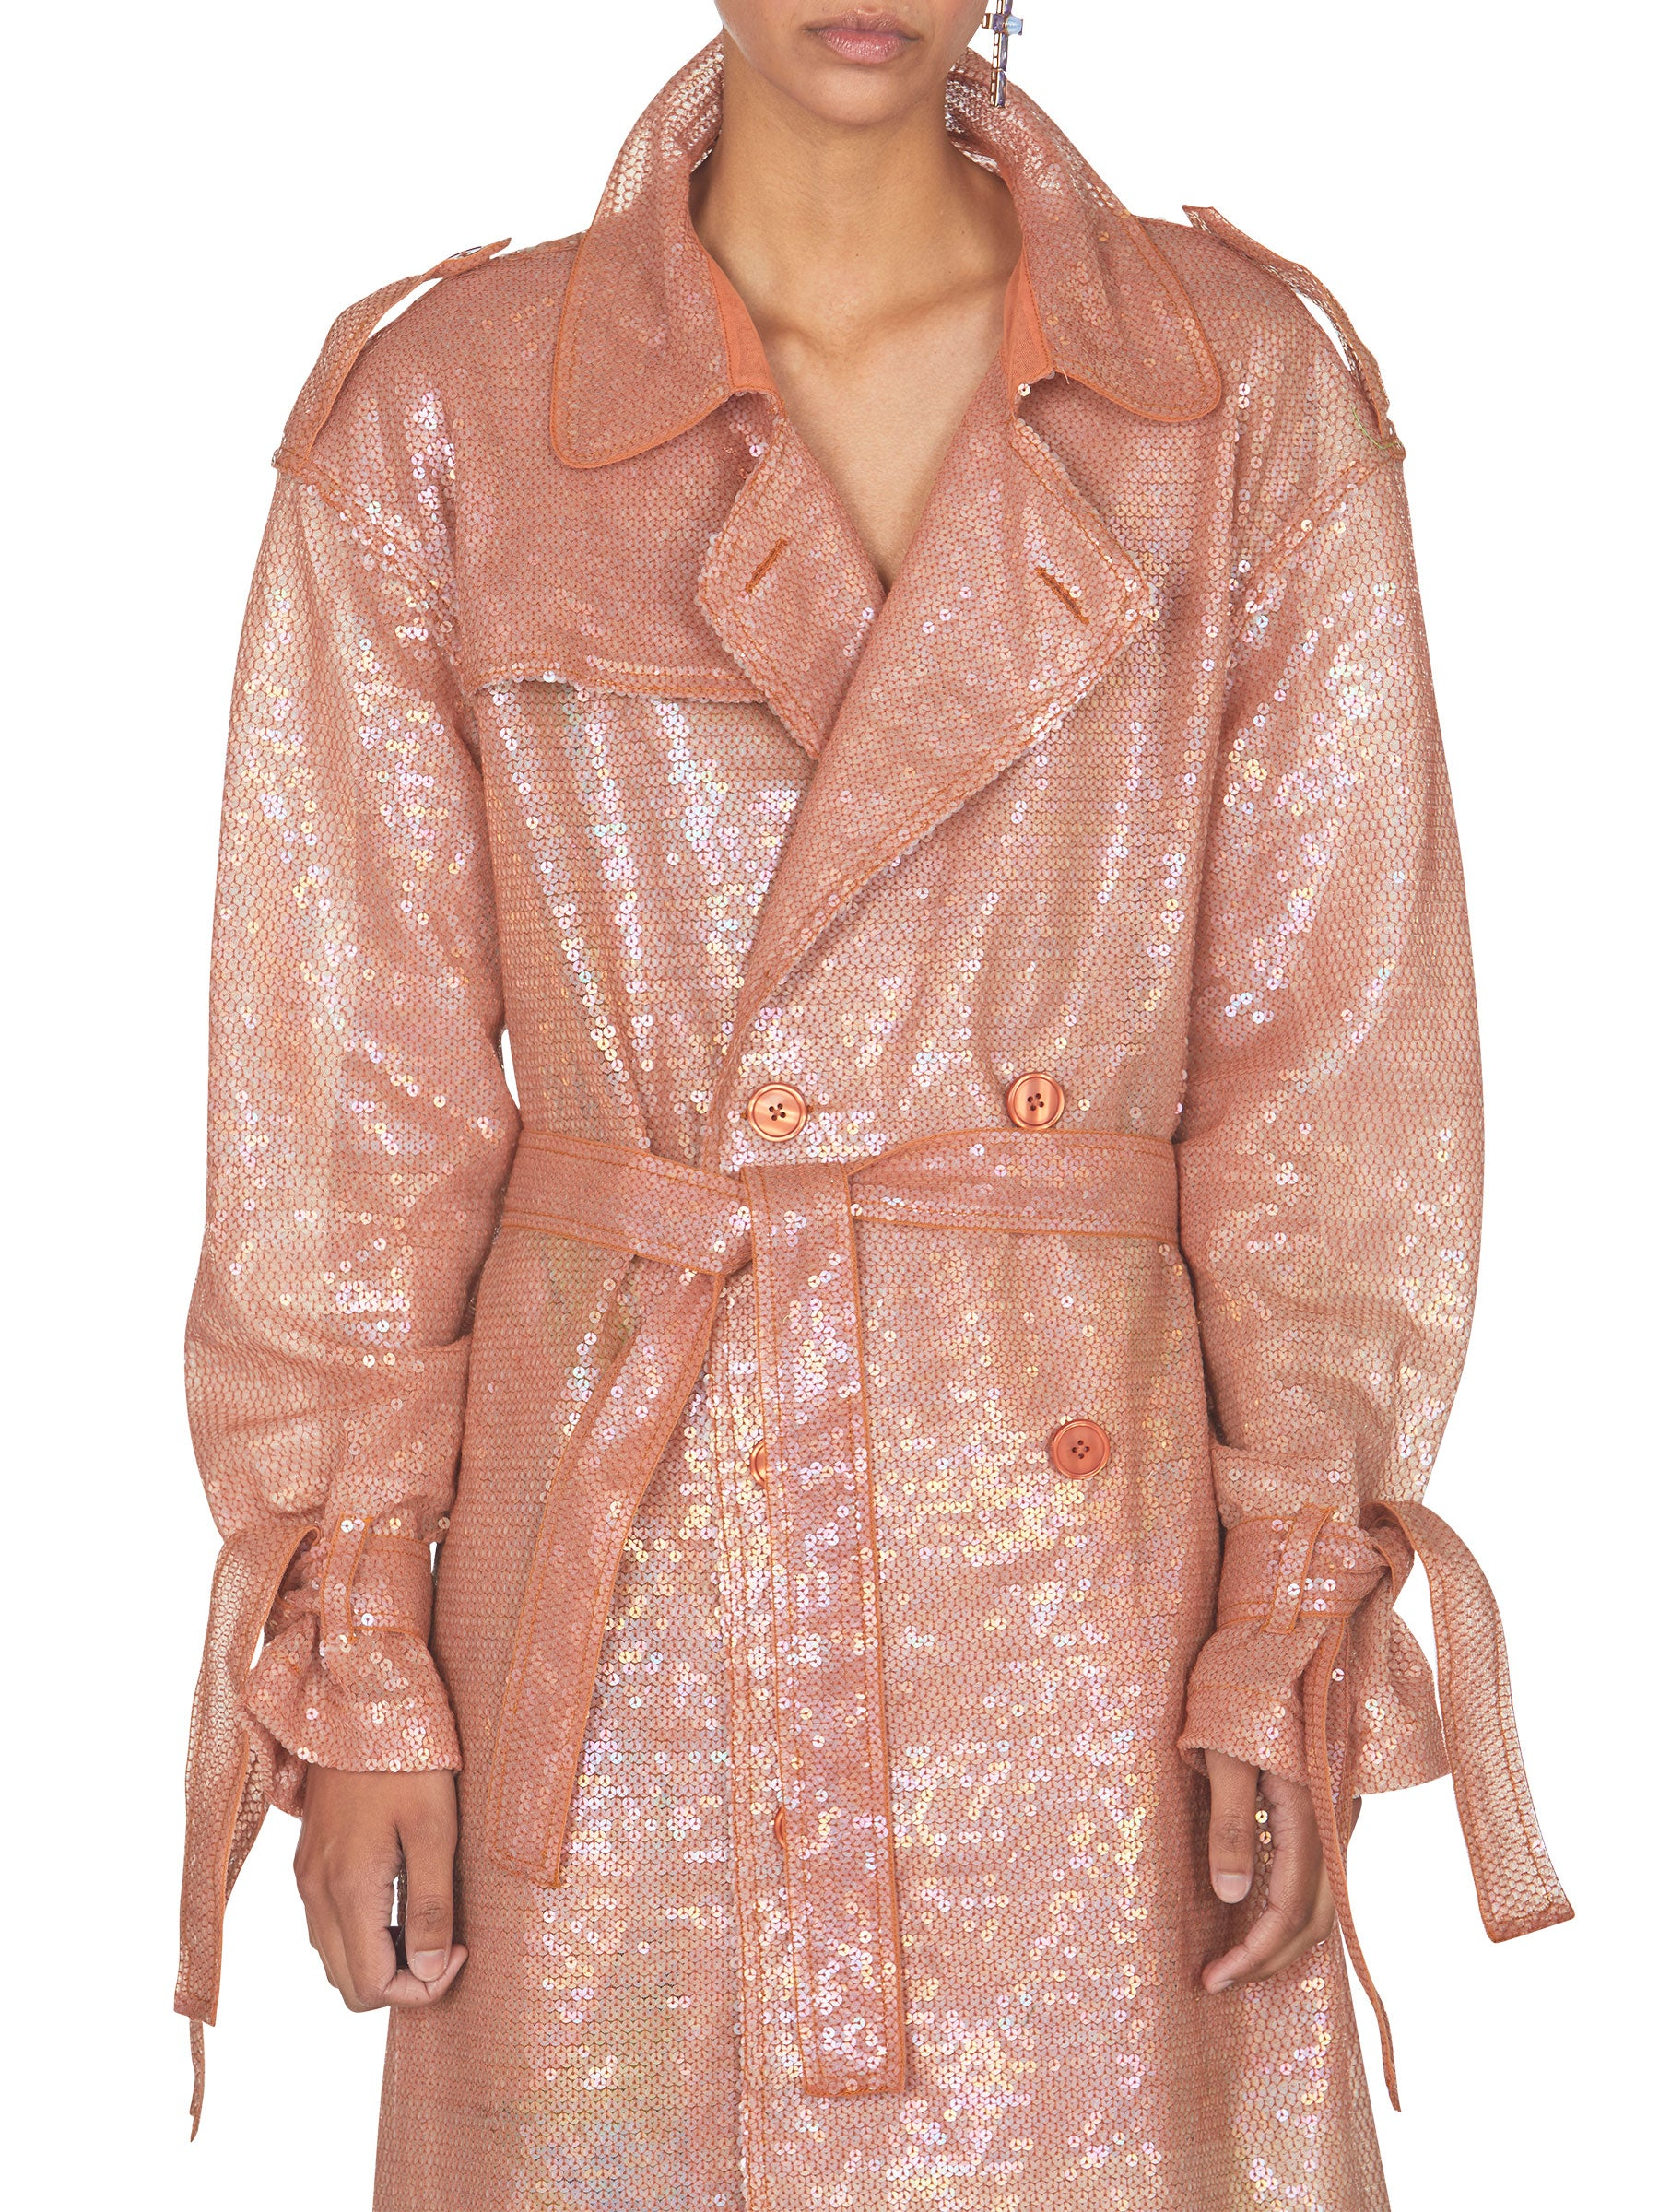 odd92 Ashish Sequin Trench Coat Mirage Spring/Summer 2019 - 5